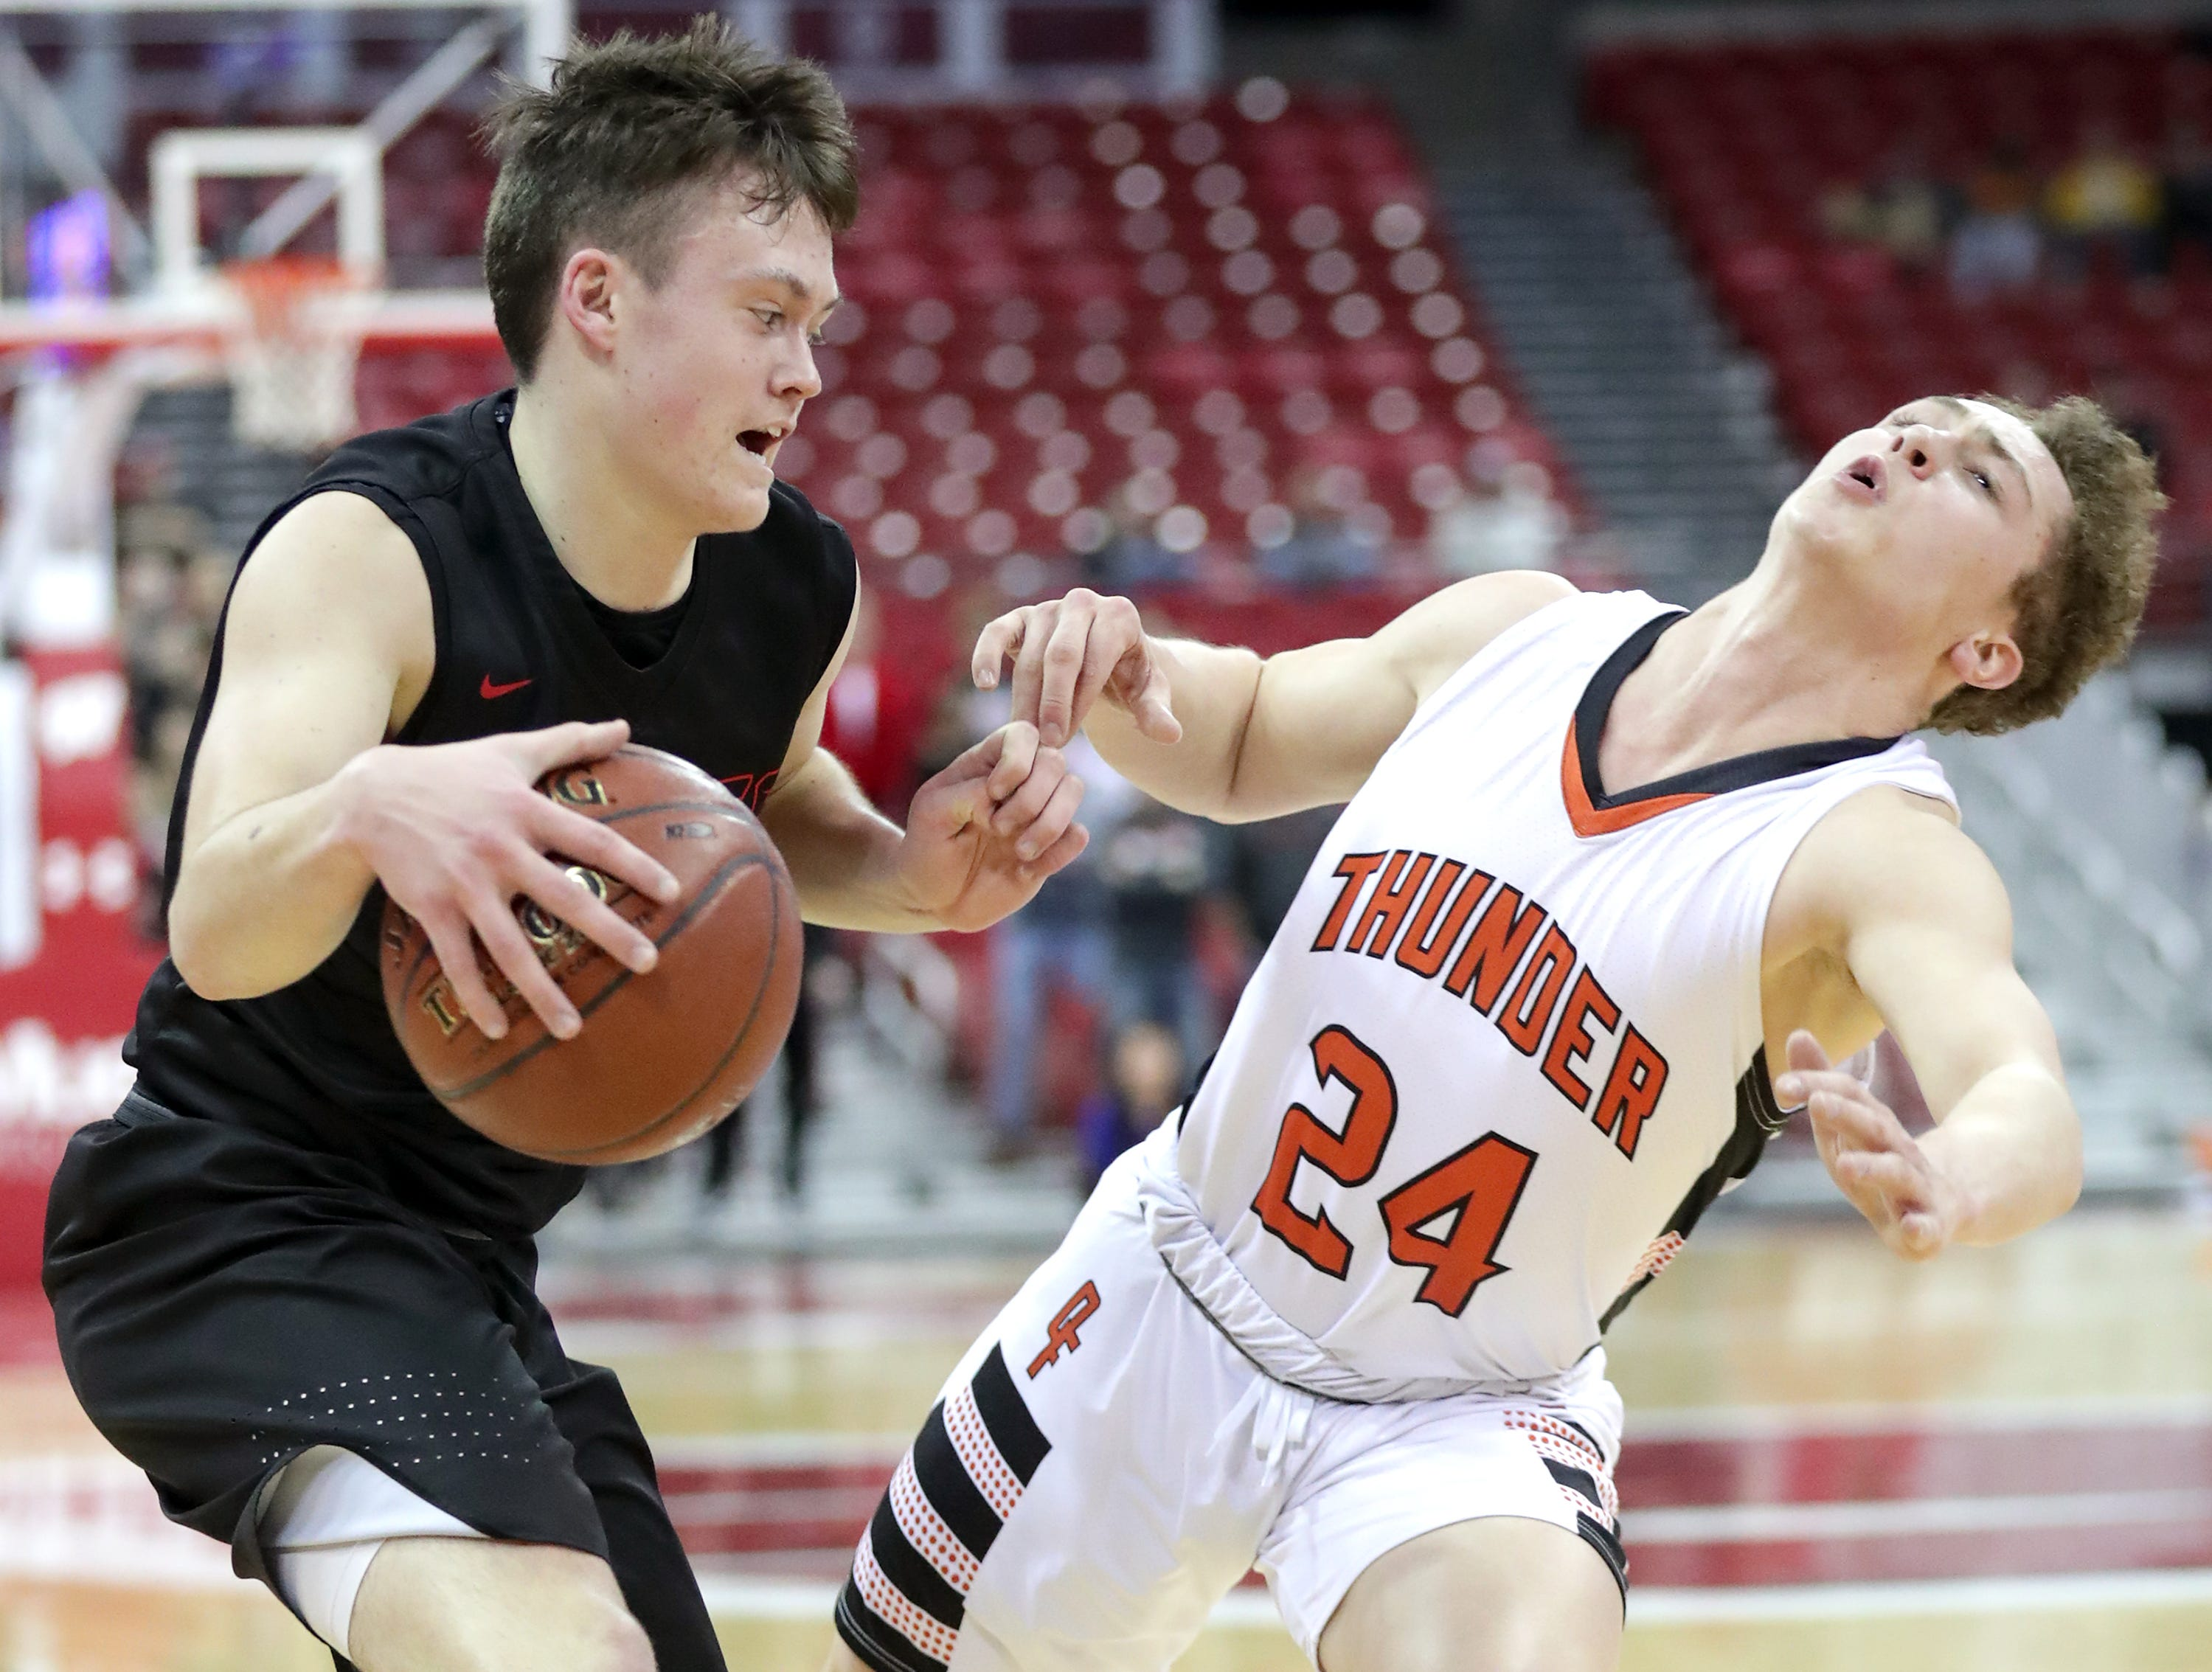 Lourdes Academy's #12 Joshua Bauer against Osseo-Fairchild High School's #24 Caden Boettcher during their WIAA Division 4 boys basketball state semifinal on Thursday, March 14, 2019, at the KohlCenter in Madison, Wis. Wm. Glasheen/USA TODAY NETWORK-Wisconsin.